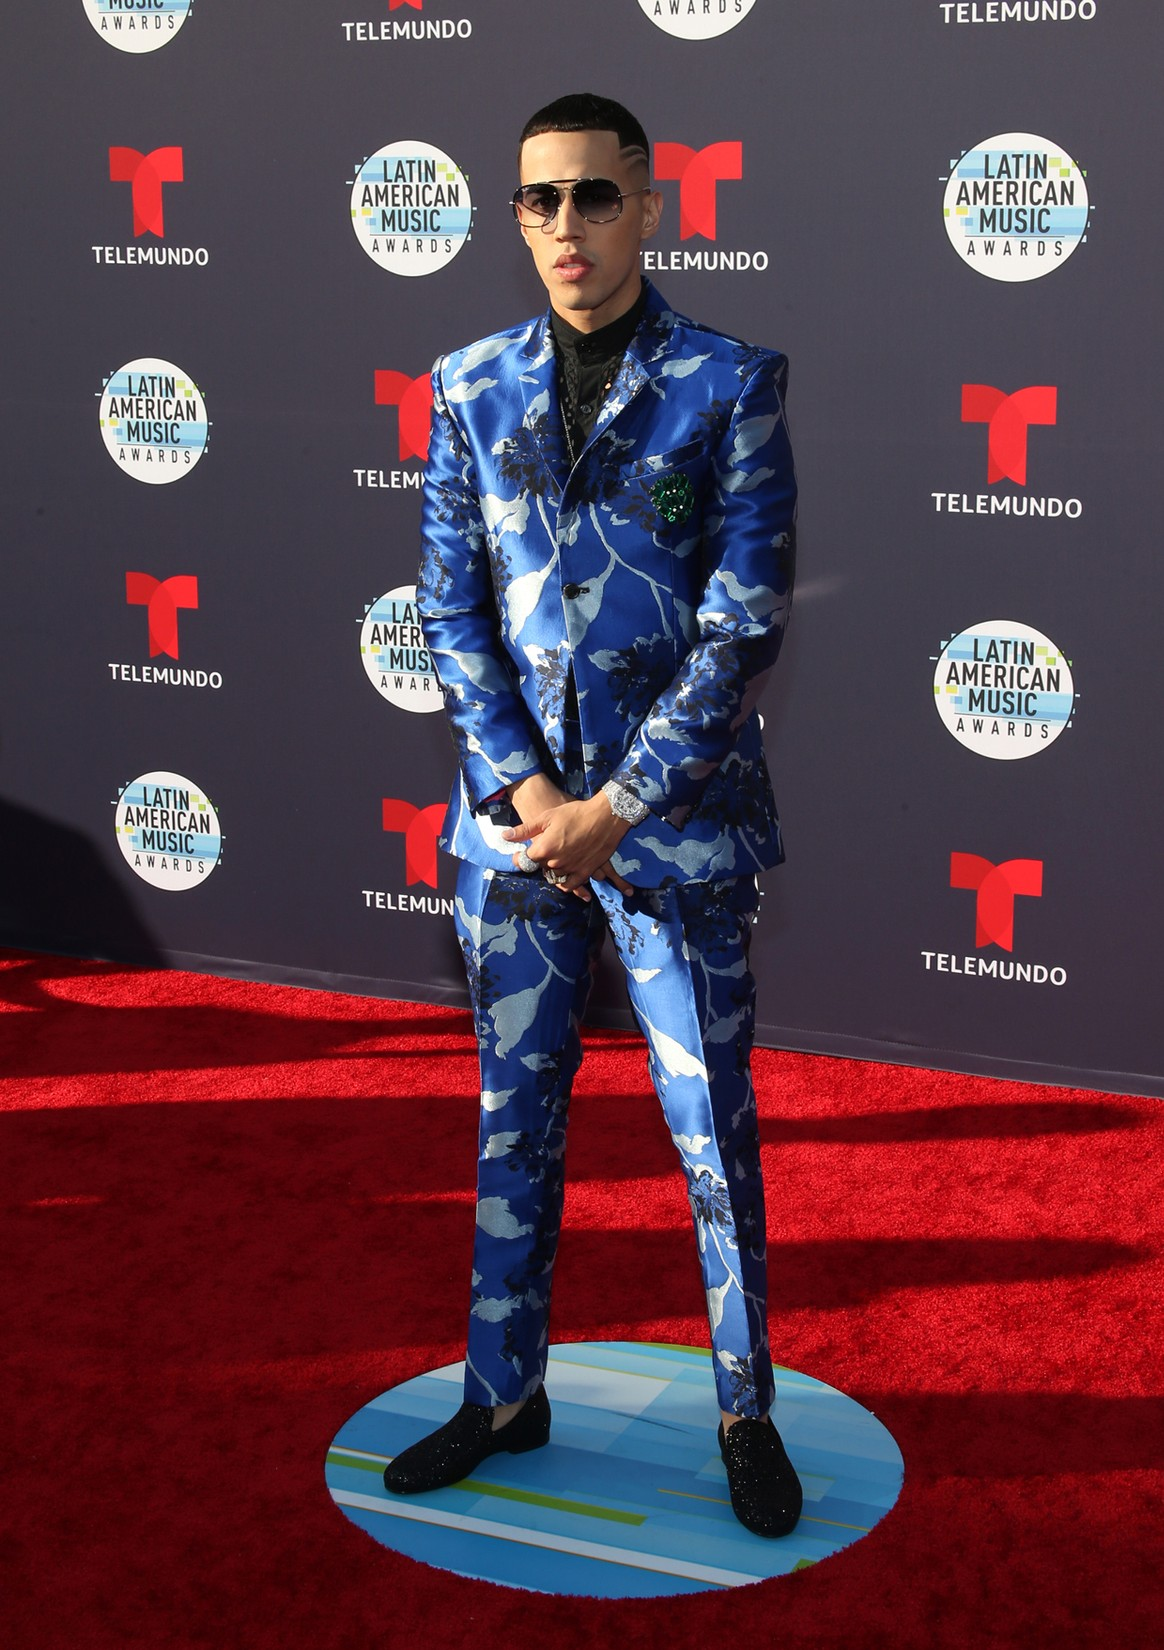 Brytiago attends the 2018 Latin American Music Awards at Dolby Theatre on Oct. 25, 2018 in Hollywood, Calif.